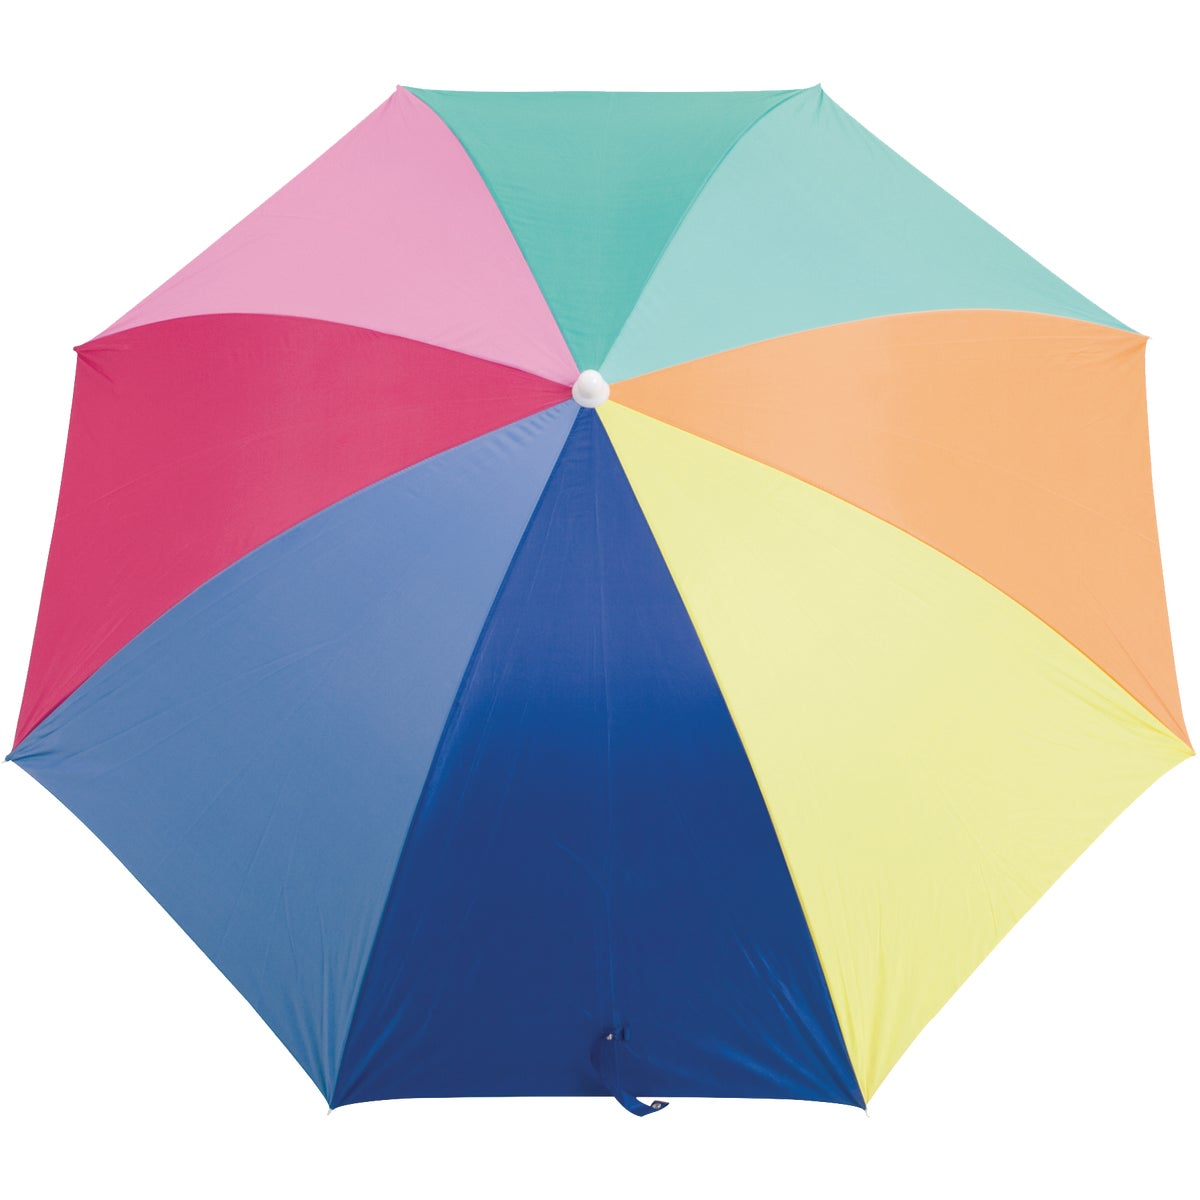 6' NYLON UMBRELLA - UB884-775 by Rio Brands Llc